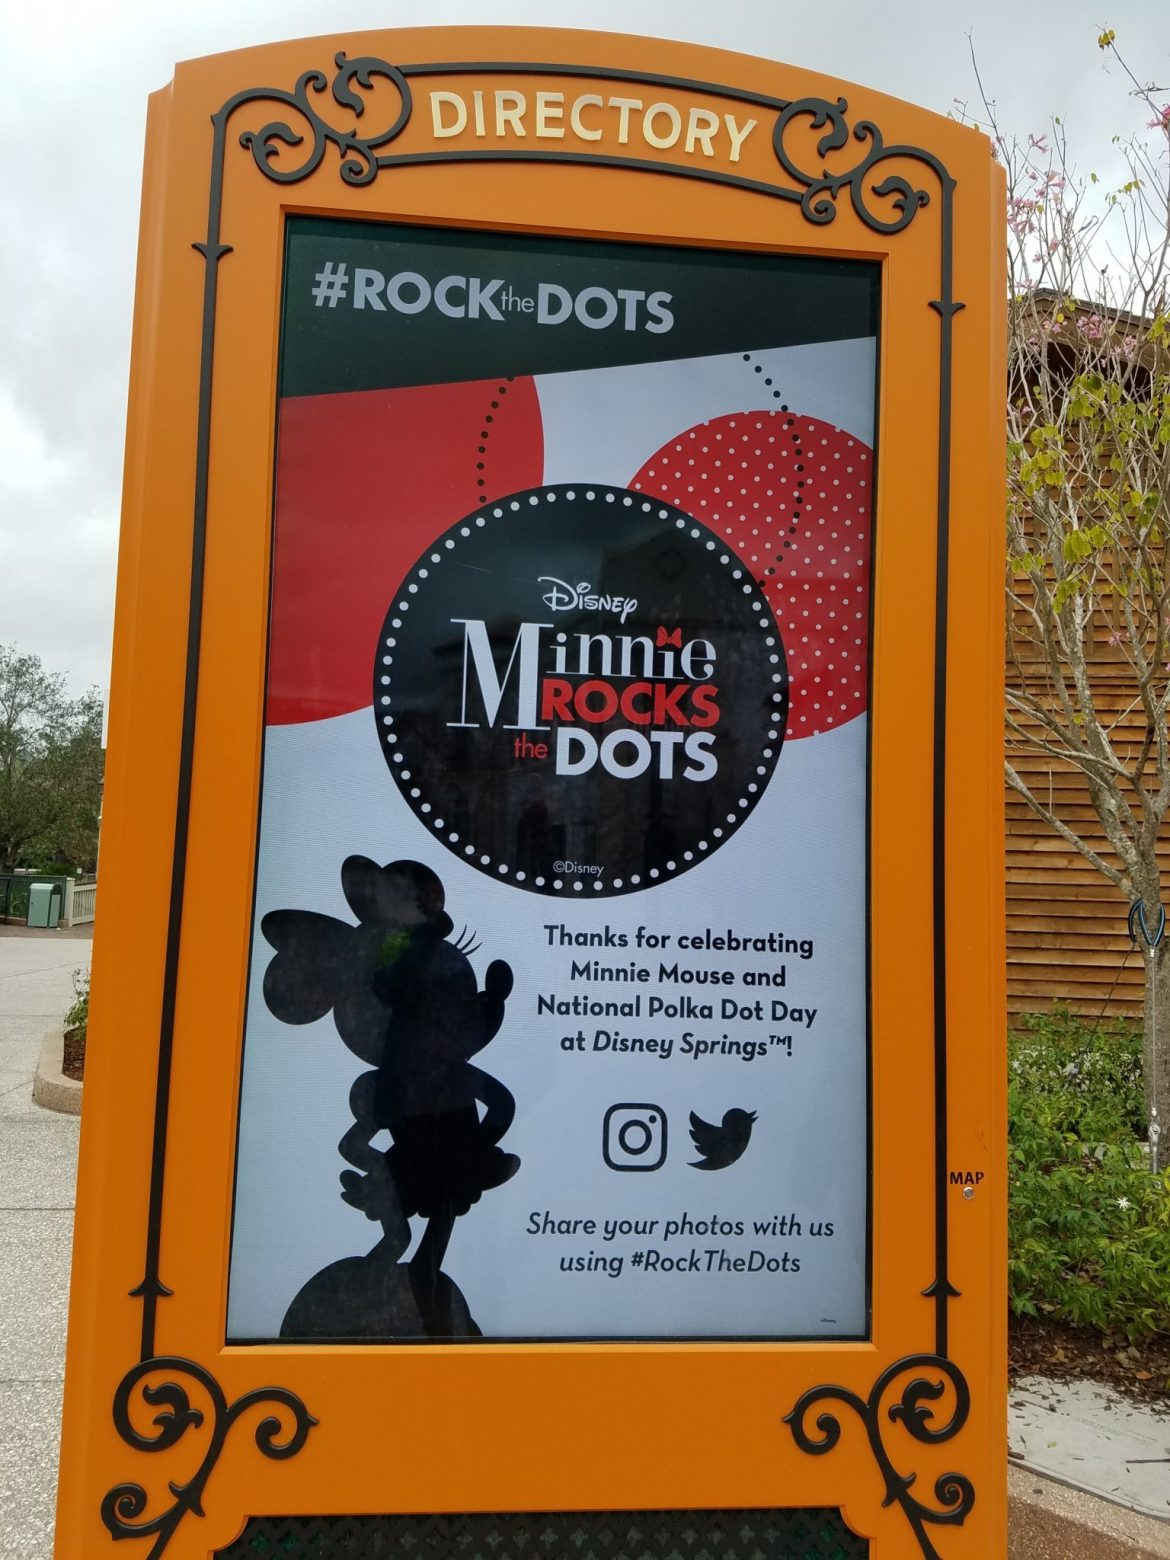 Minnie Hosted Fun Rock the Dots Event At Disney Springs In Honor of National Polka Dot Day